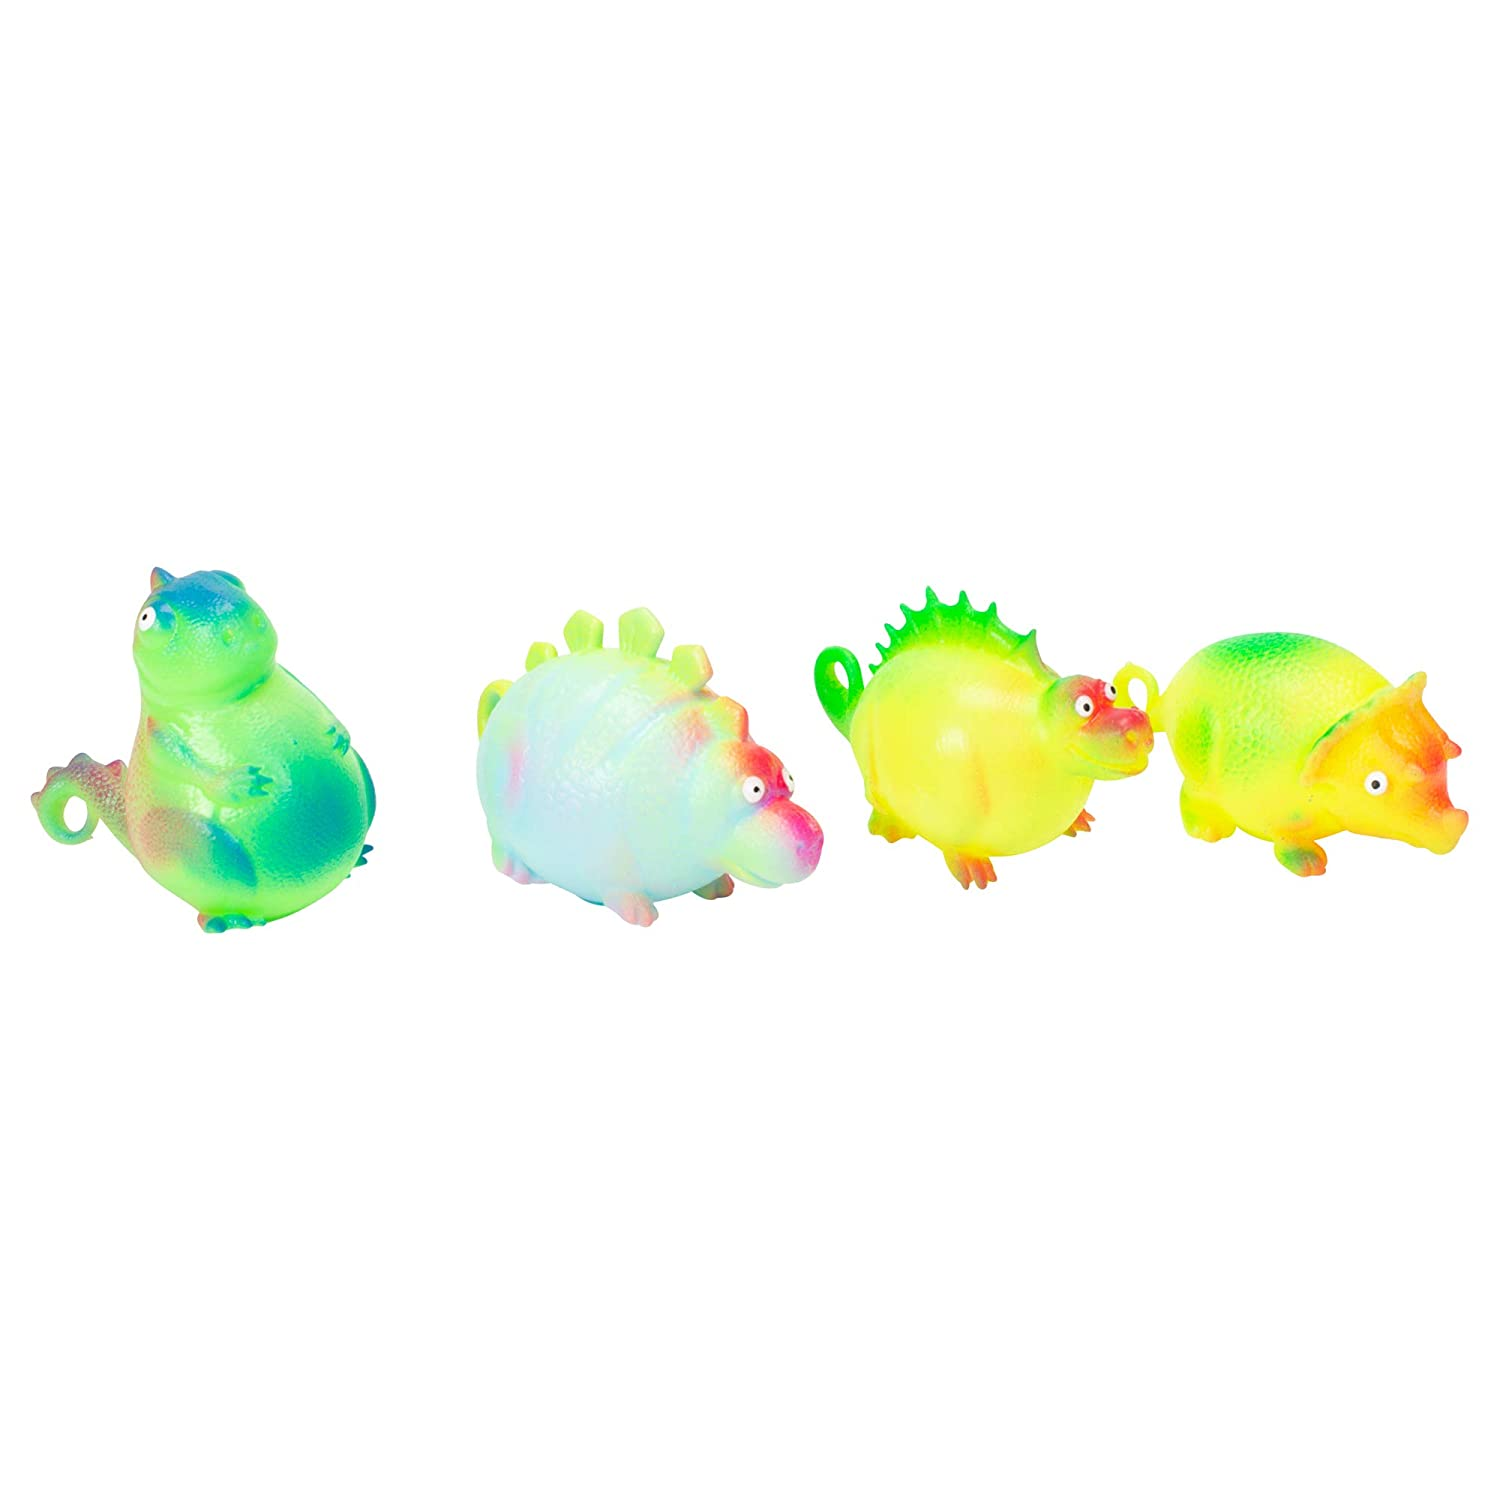 Class Collections Dinosaur Balloon Ball Inflatable Kids Novelty Toy Pack of 24